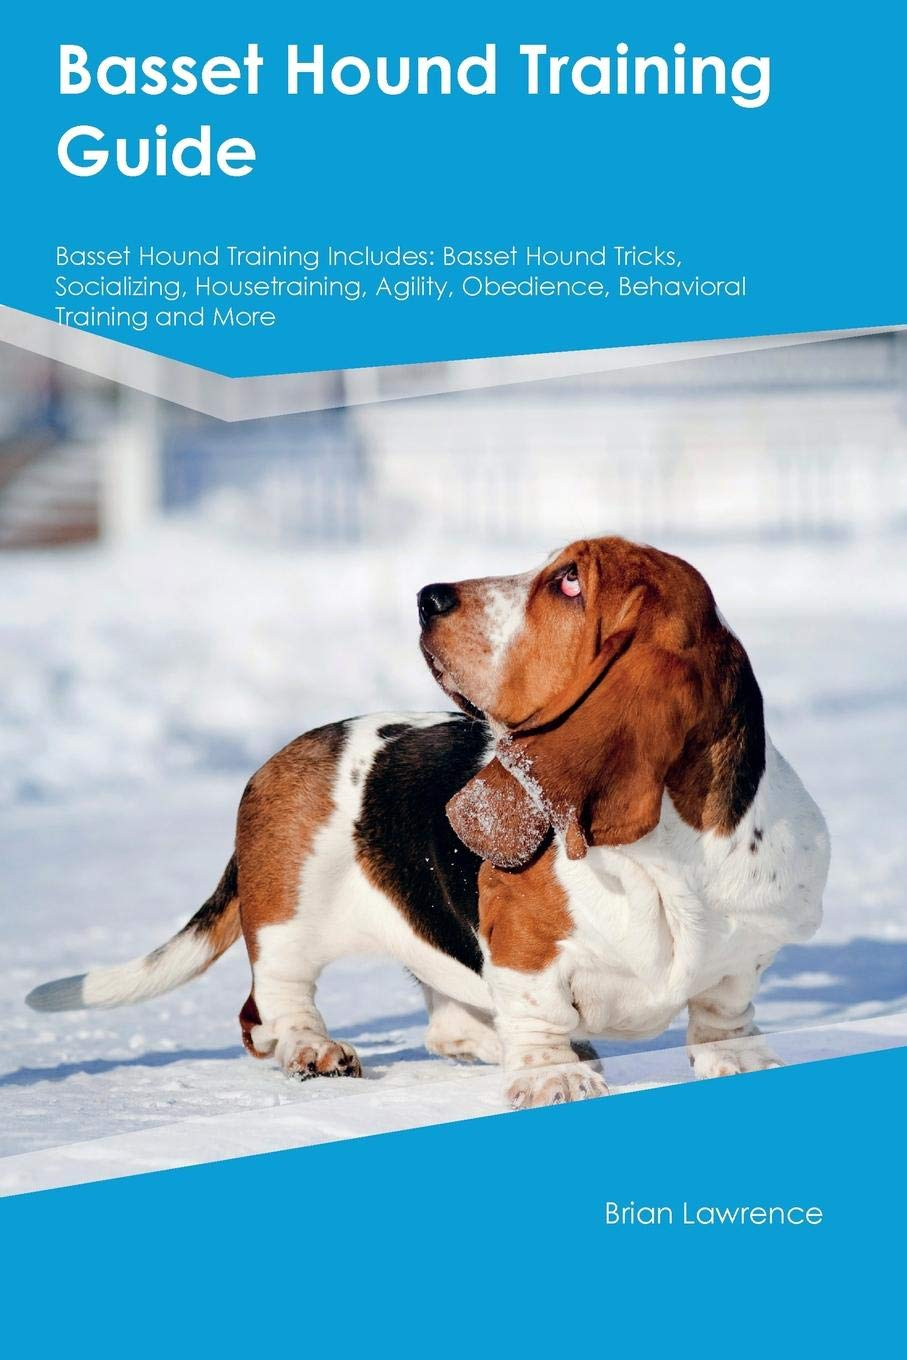 Basset Hound Training Guide Basset Hound Training Includes: Basset Hound Tricks, Socializing, Housetraining, Agility…